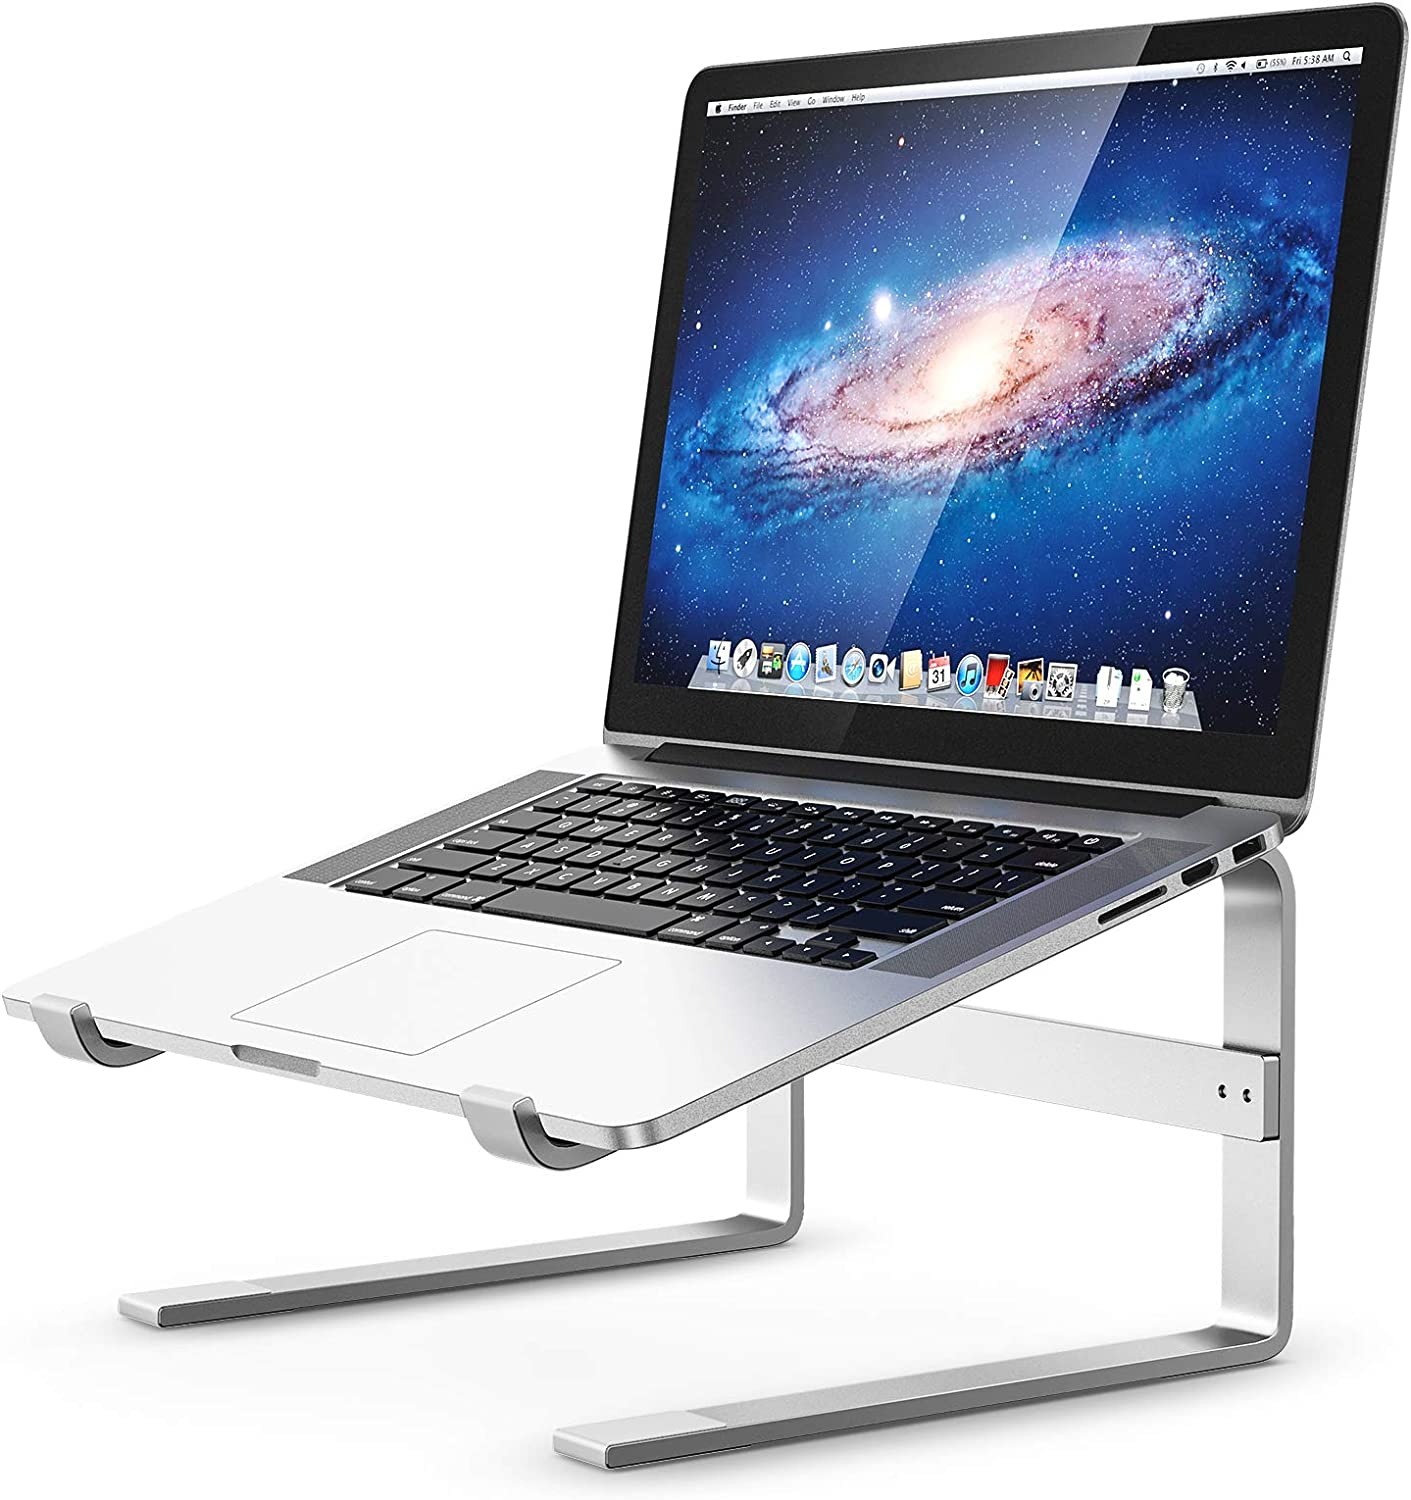 Laptop Stand, Tiluza Aluminum Laptop Riser for Desk, Ergonomic Computer Stand Notebook Metal Holder Elevator Compatible with MacBook Air Pro, Dell XPS, HP, Lenovo and More 10-17'' PC